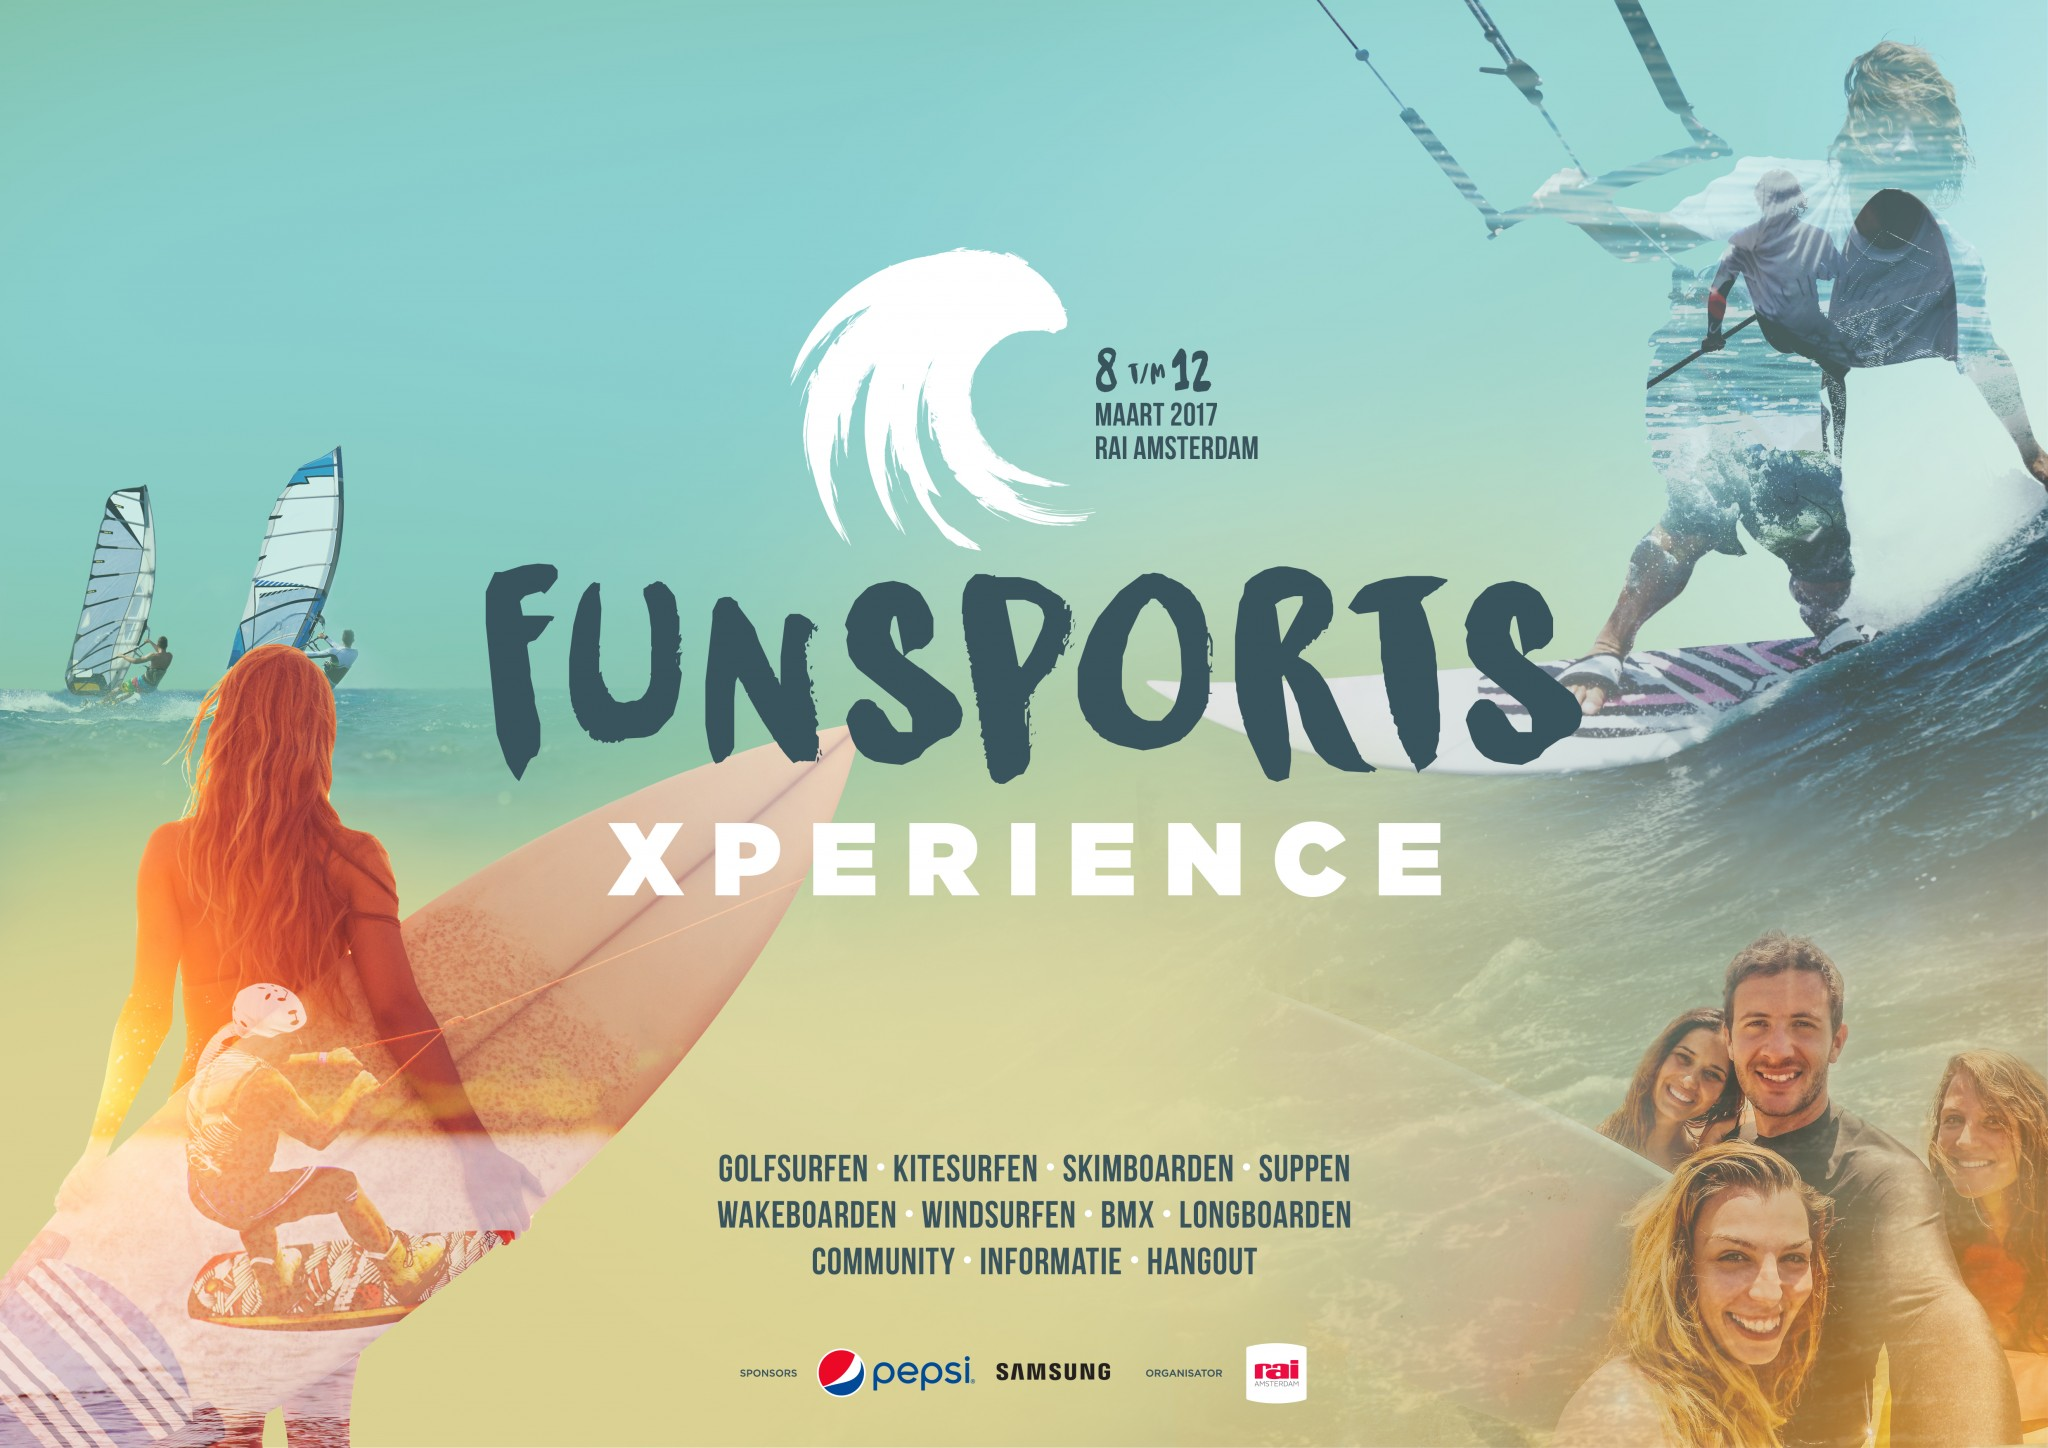 Funsports-Xperience - campagnebeeld 2017 - 002